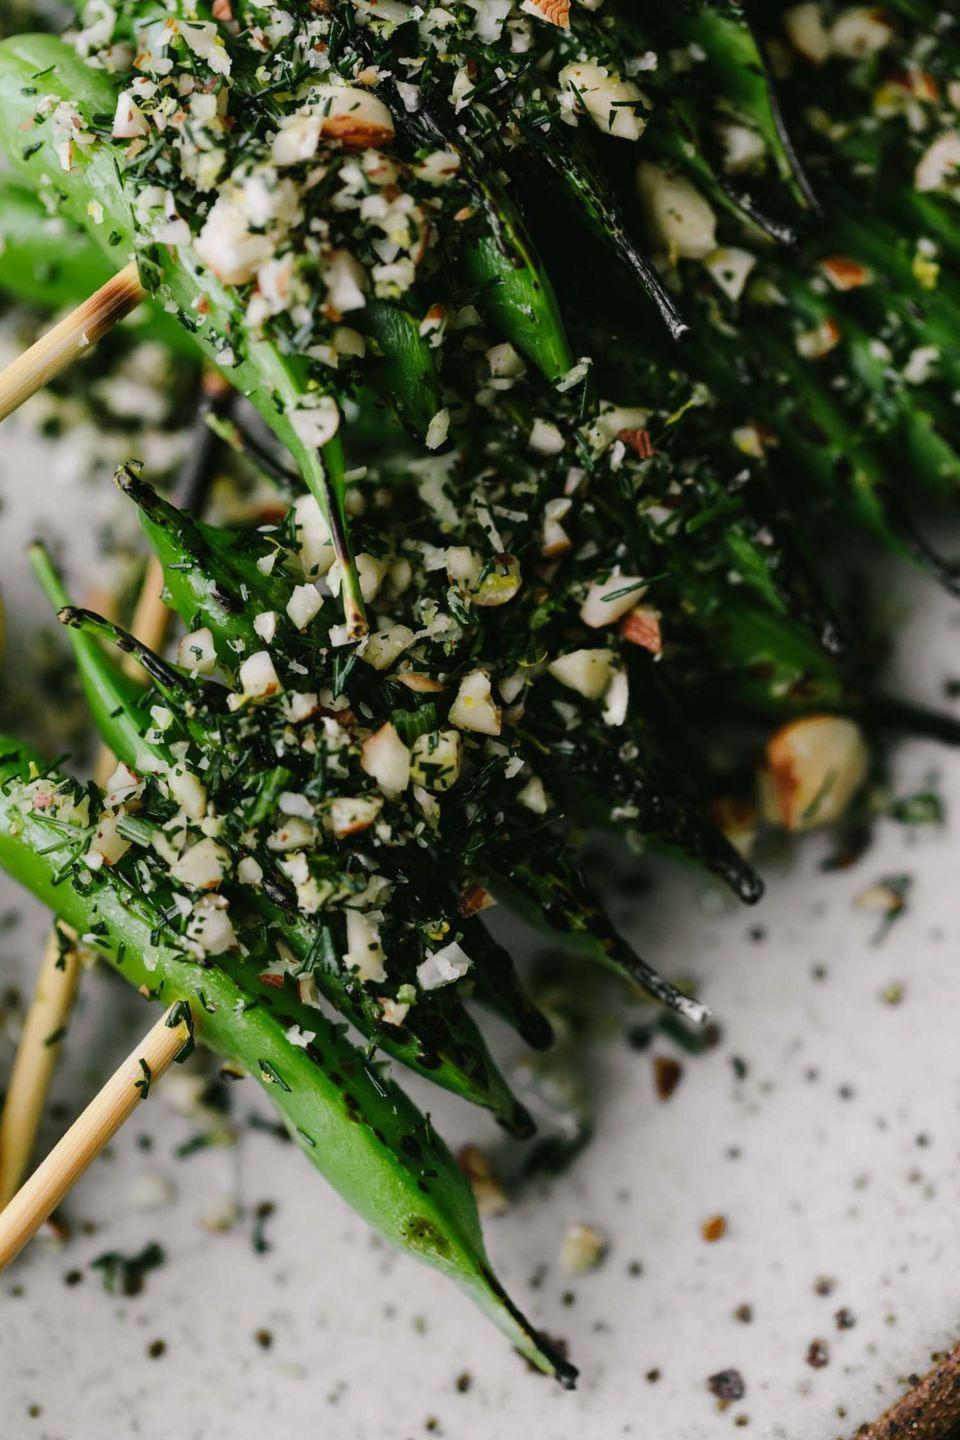 """<p>The hazelnut-dill crumb coating is beyond insane. </p><p>Get the <a href=""""https://naturallyella.com/grilled-snap-peas/"""" rel=""""nofollow noopener"""" target=""""_blank"""" data-ylk=""""slk:Grilled Snap Peas"""" class=""""link rapid-noclick-resp"""">Grilled Snap Peas</a> recipe.</p><p>Recipe from <a href=""""https://naturallyella.com/"""" rel=""""nofollow noopener"""" target=""""_blank"""" data-ylk=""""slk:Naturally Ella"""" class=""""link rapid-noclick-resp"""">Naturally Ella</a>.</p>"""